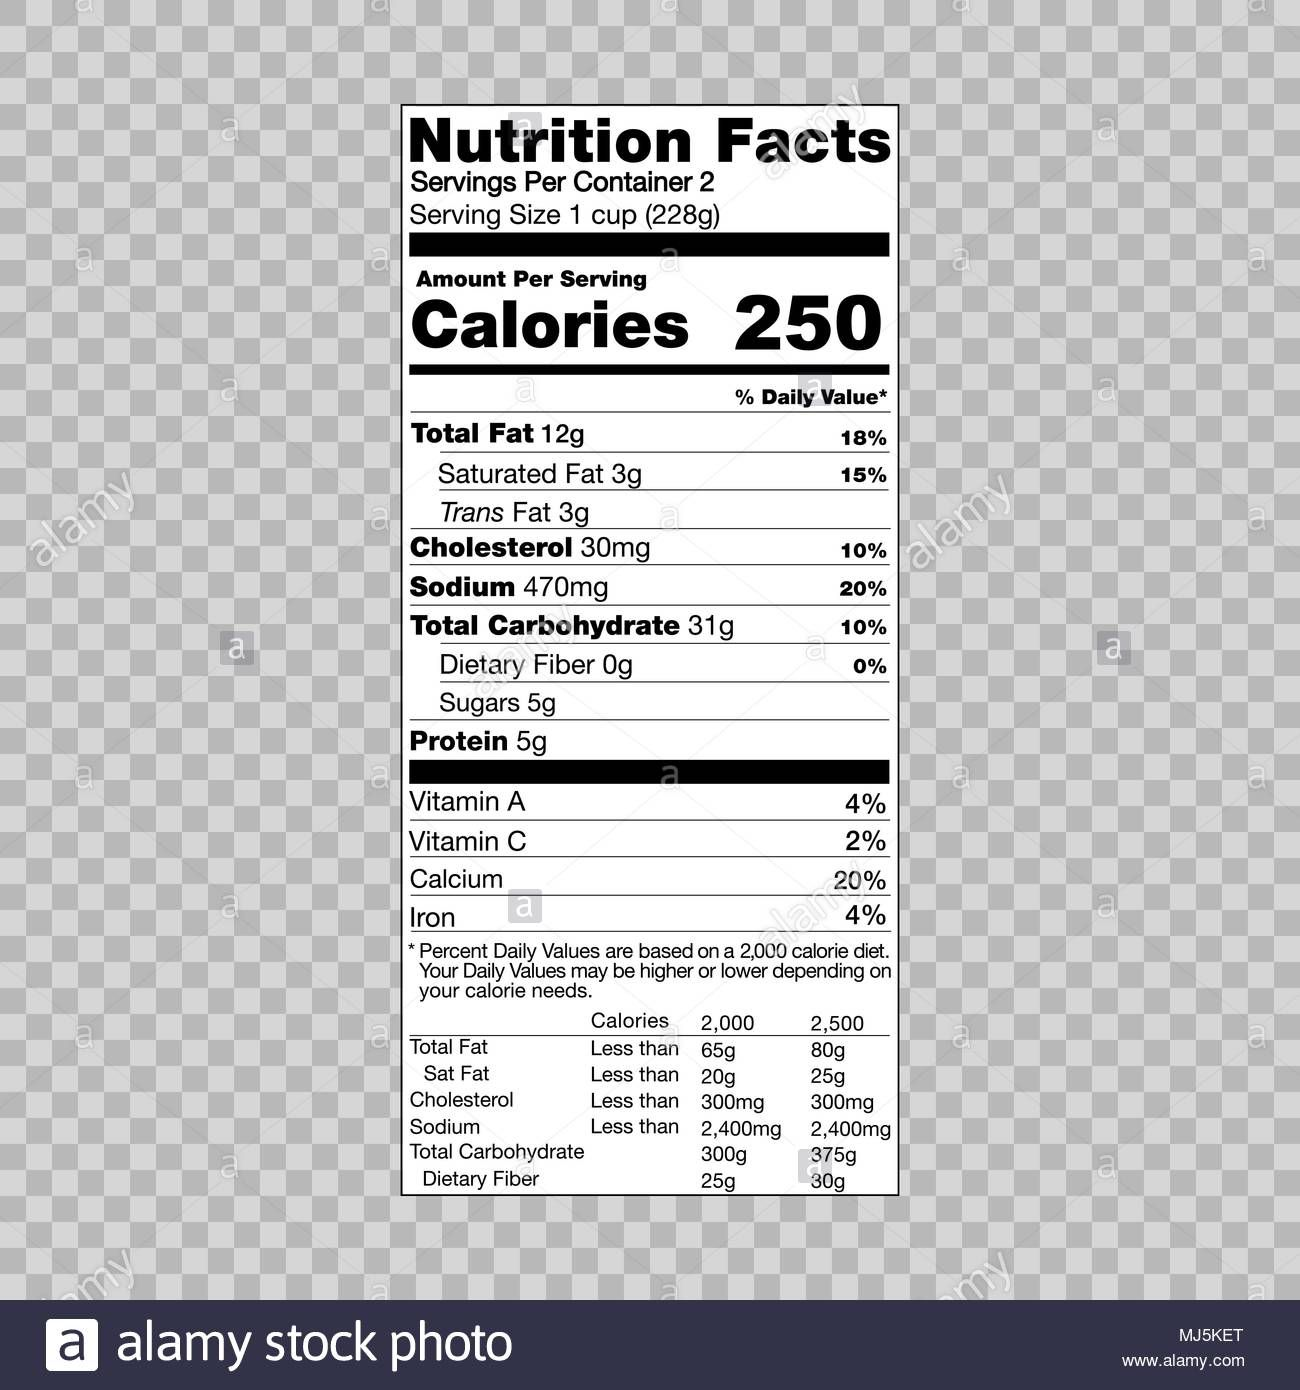 Nutrition Facts Information Template For Food Label Stock